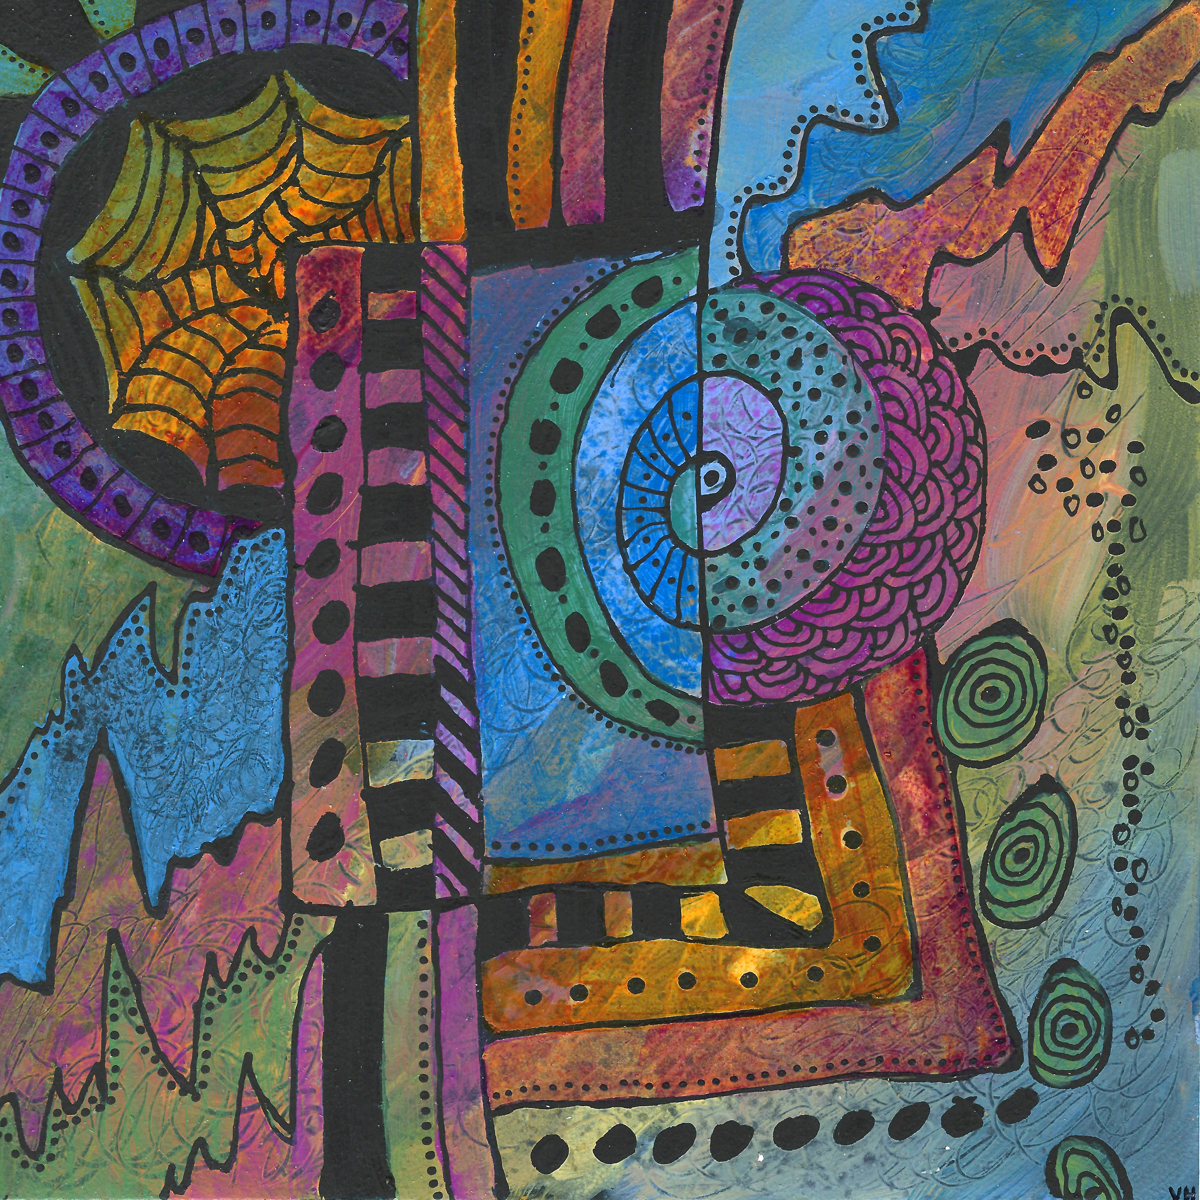 Spiral in Time by Valerie Hildebrand (large view)